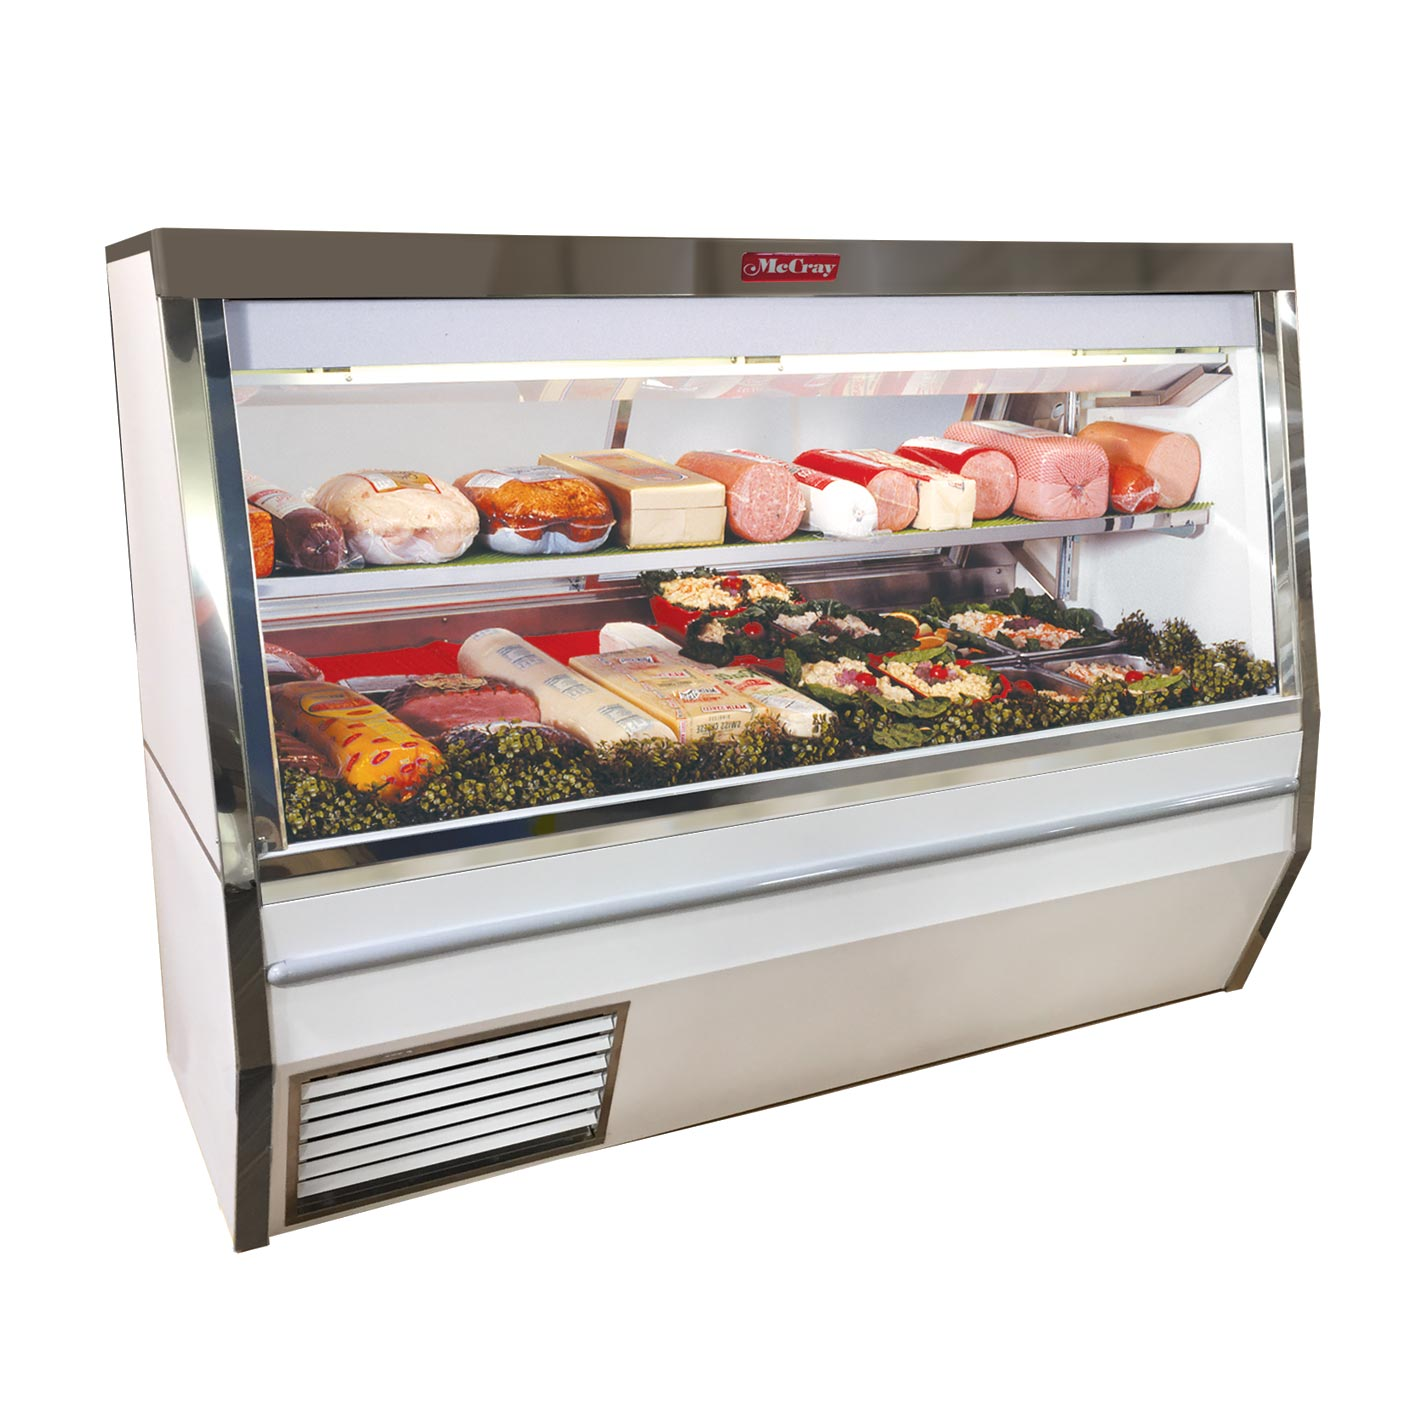 Howard-McCray R-CDS34N-8-S-LS-LED display case, refrigerated deli